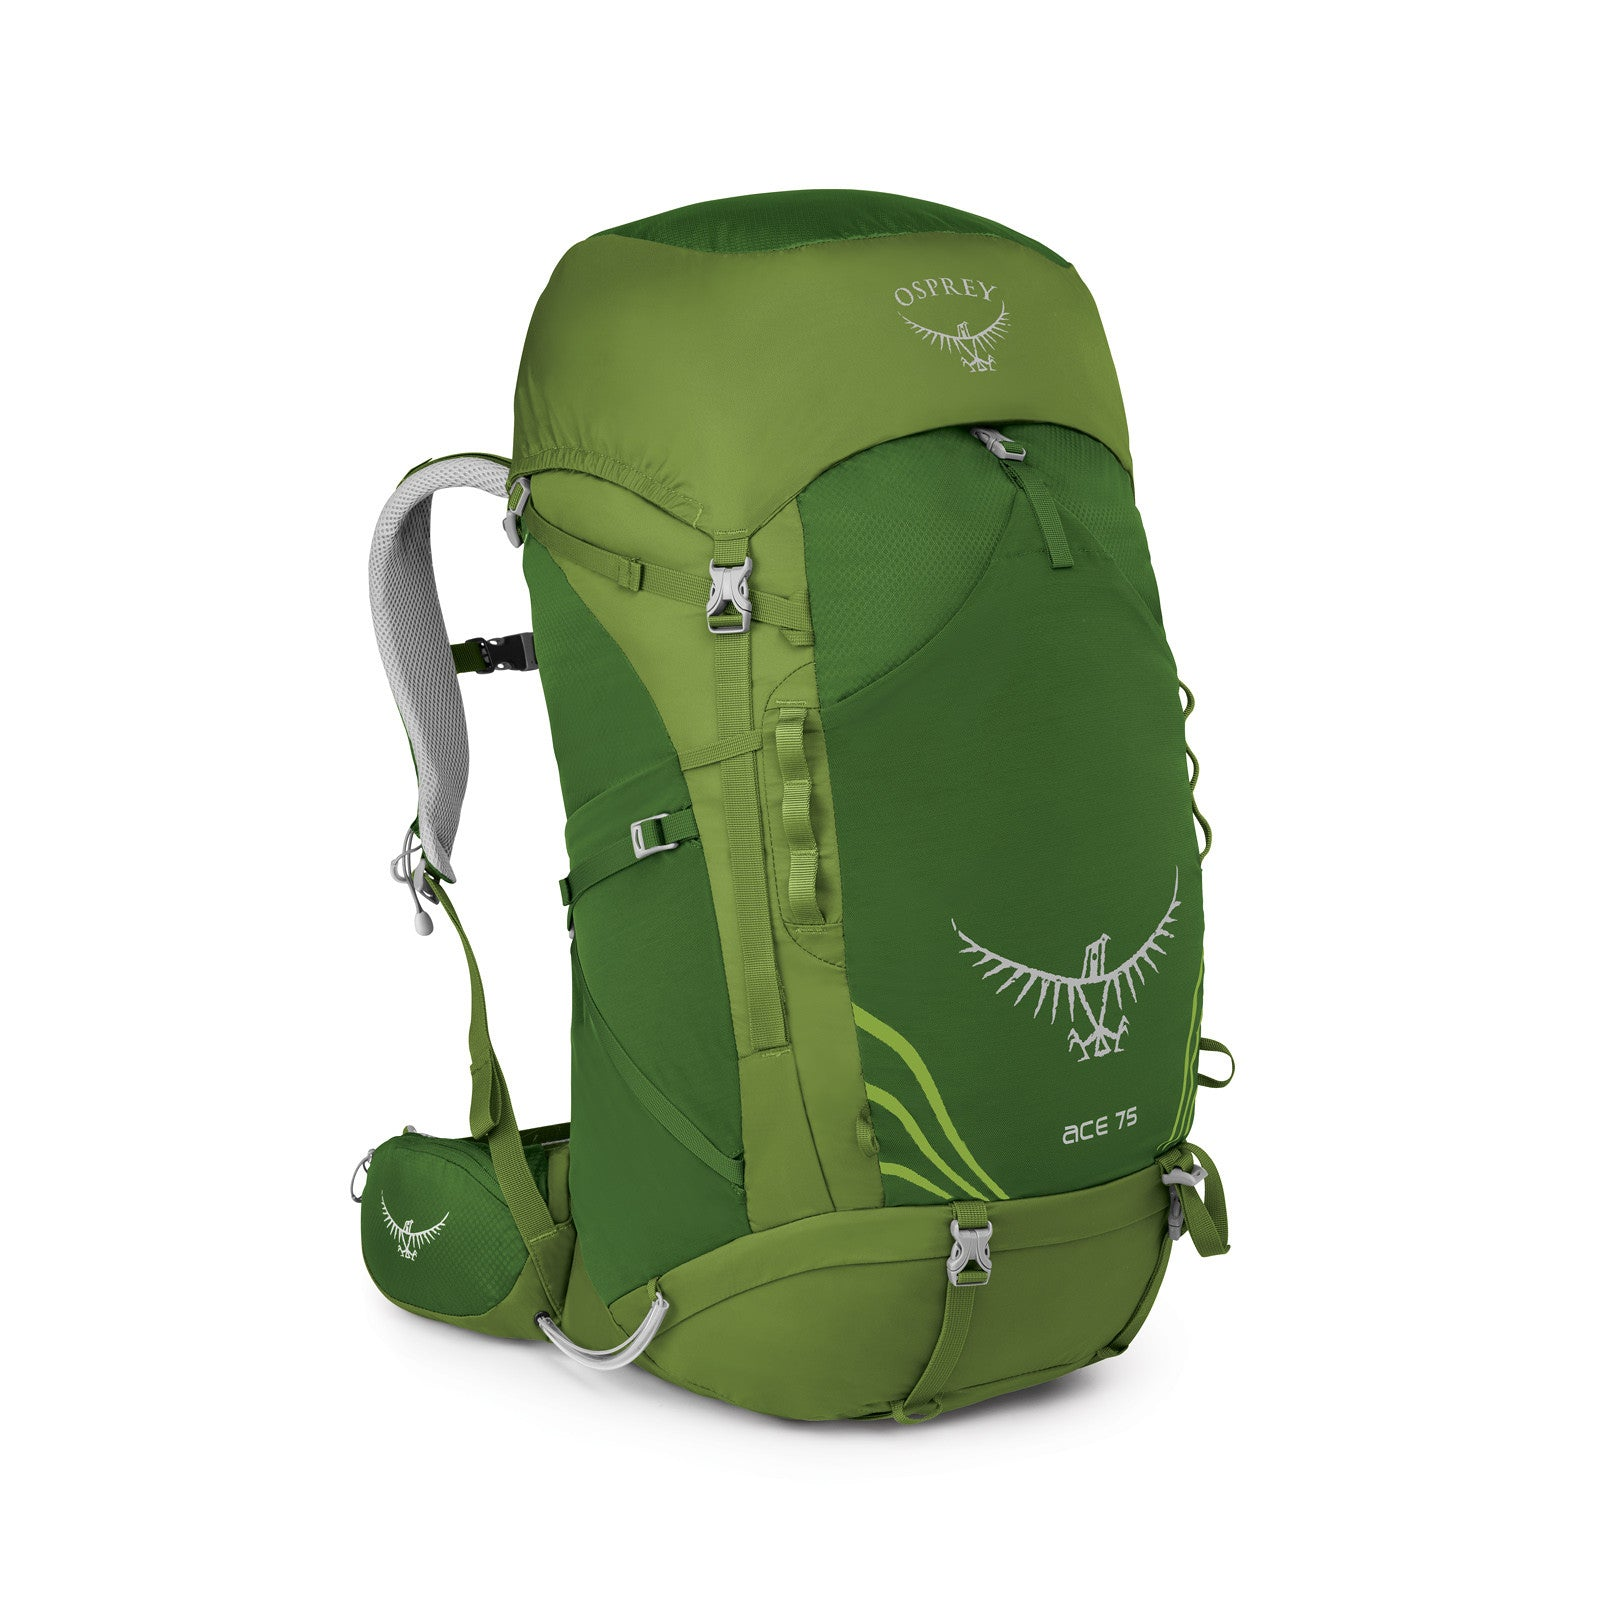 Osprey Ace 75 Children's Travel Pack